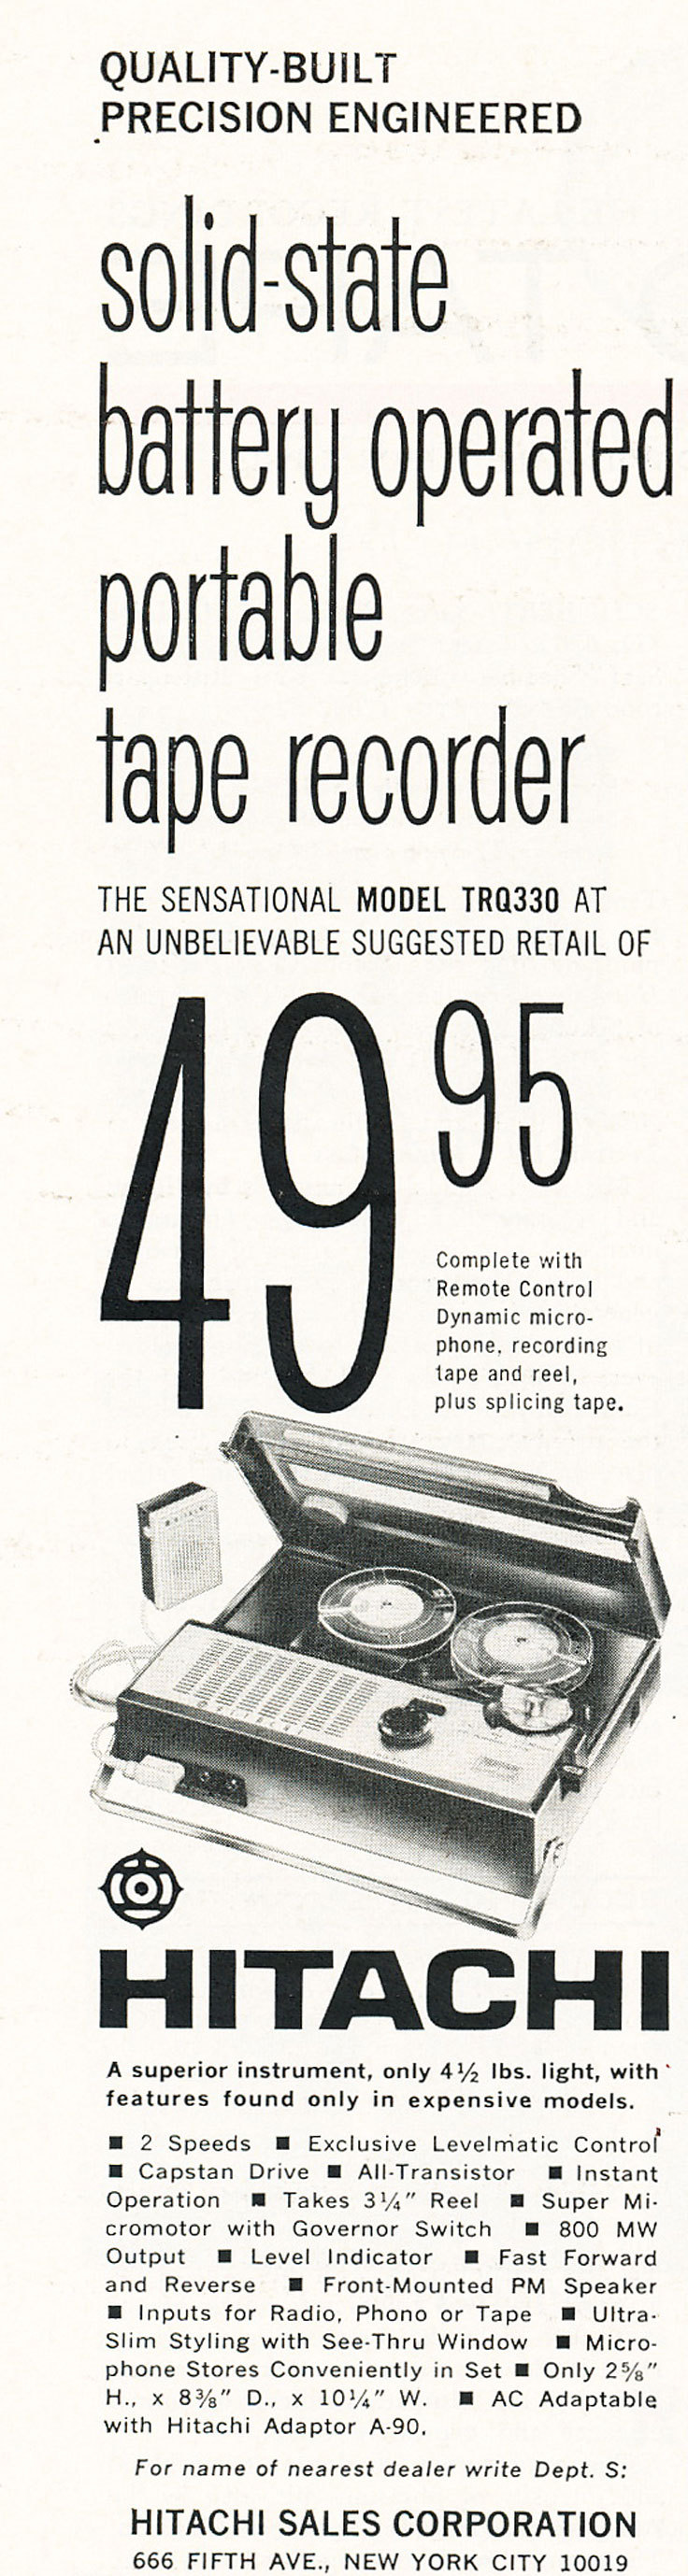 1966 ad for Hitachi reel tape recorders in Reel2ReelTexas.com's vintage recording collection